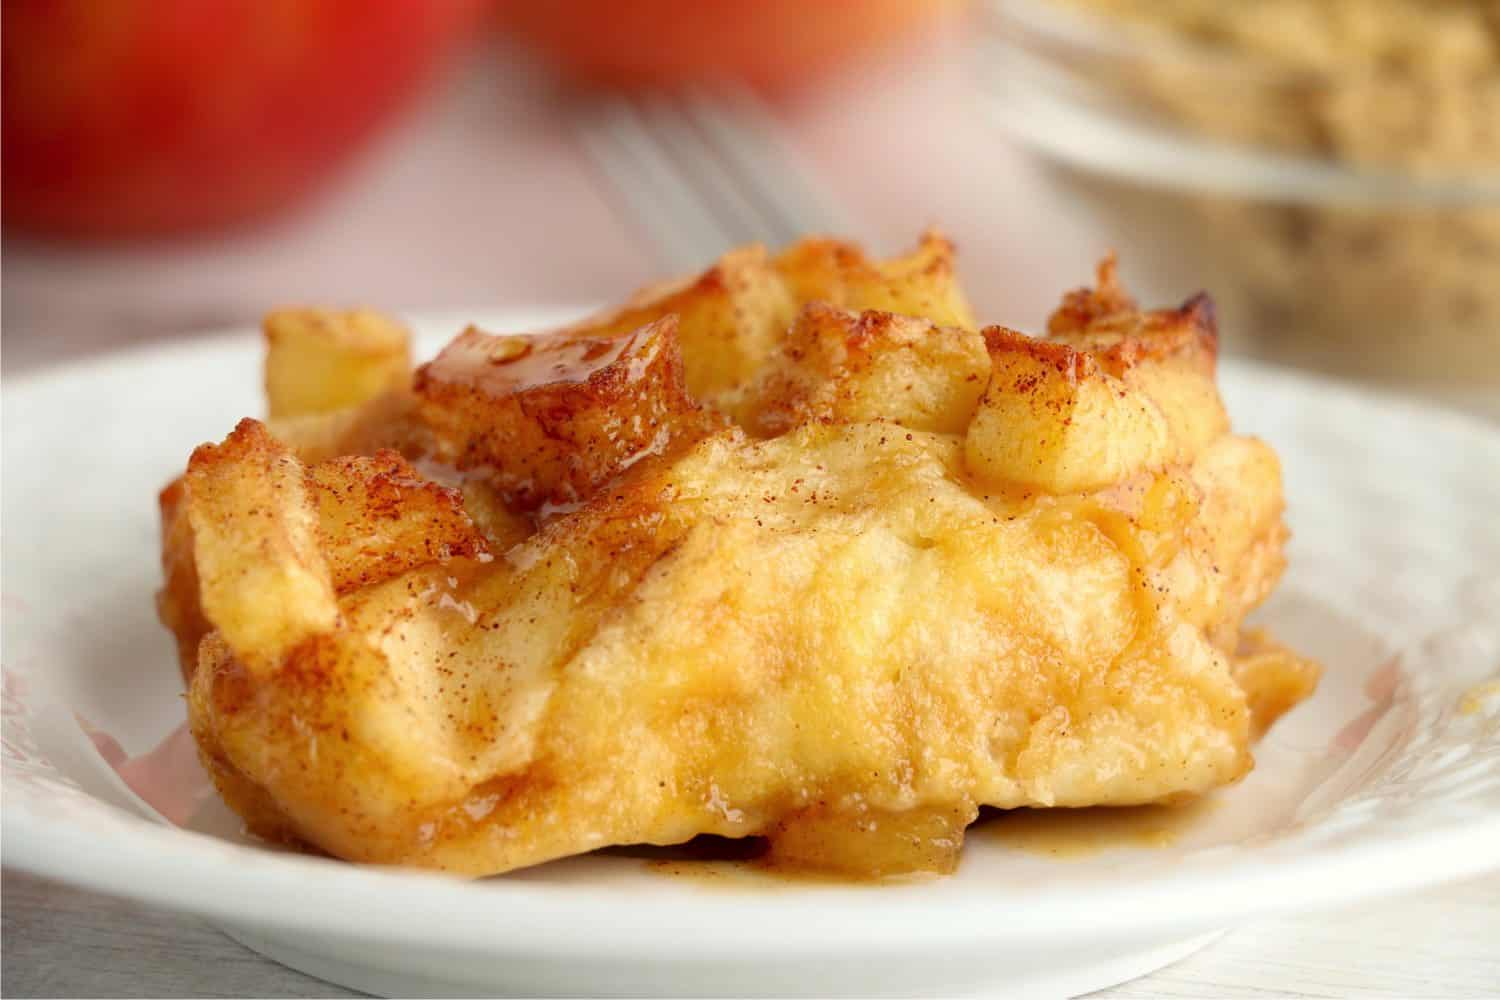 a piece of air fryer apple danish on a plate